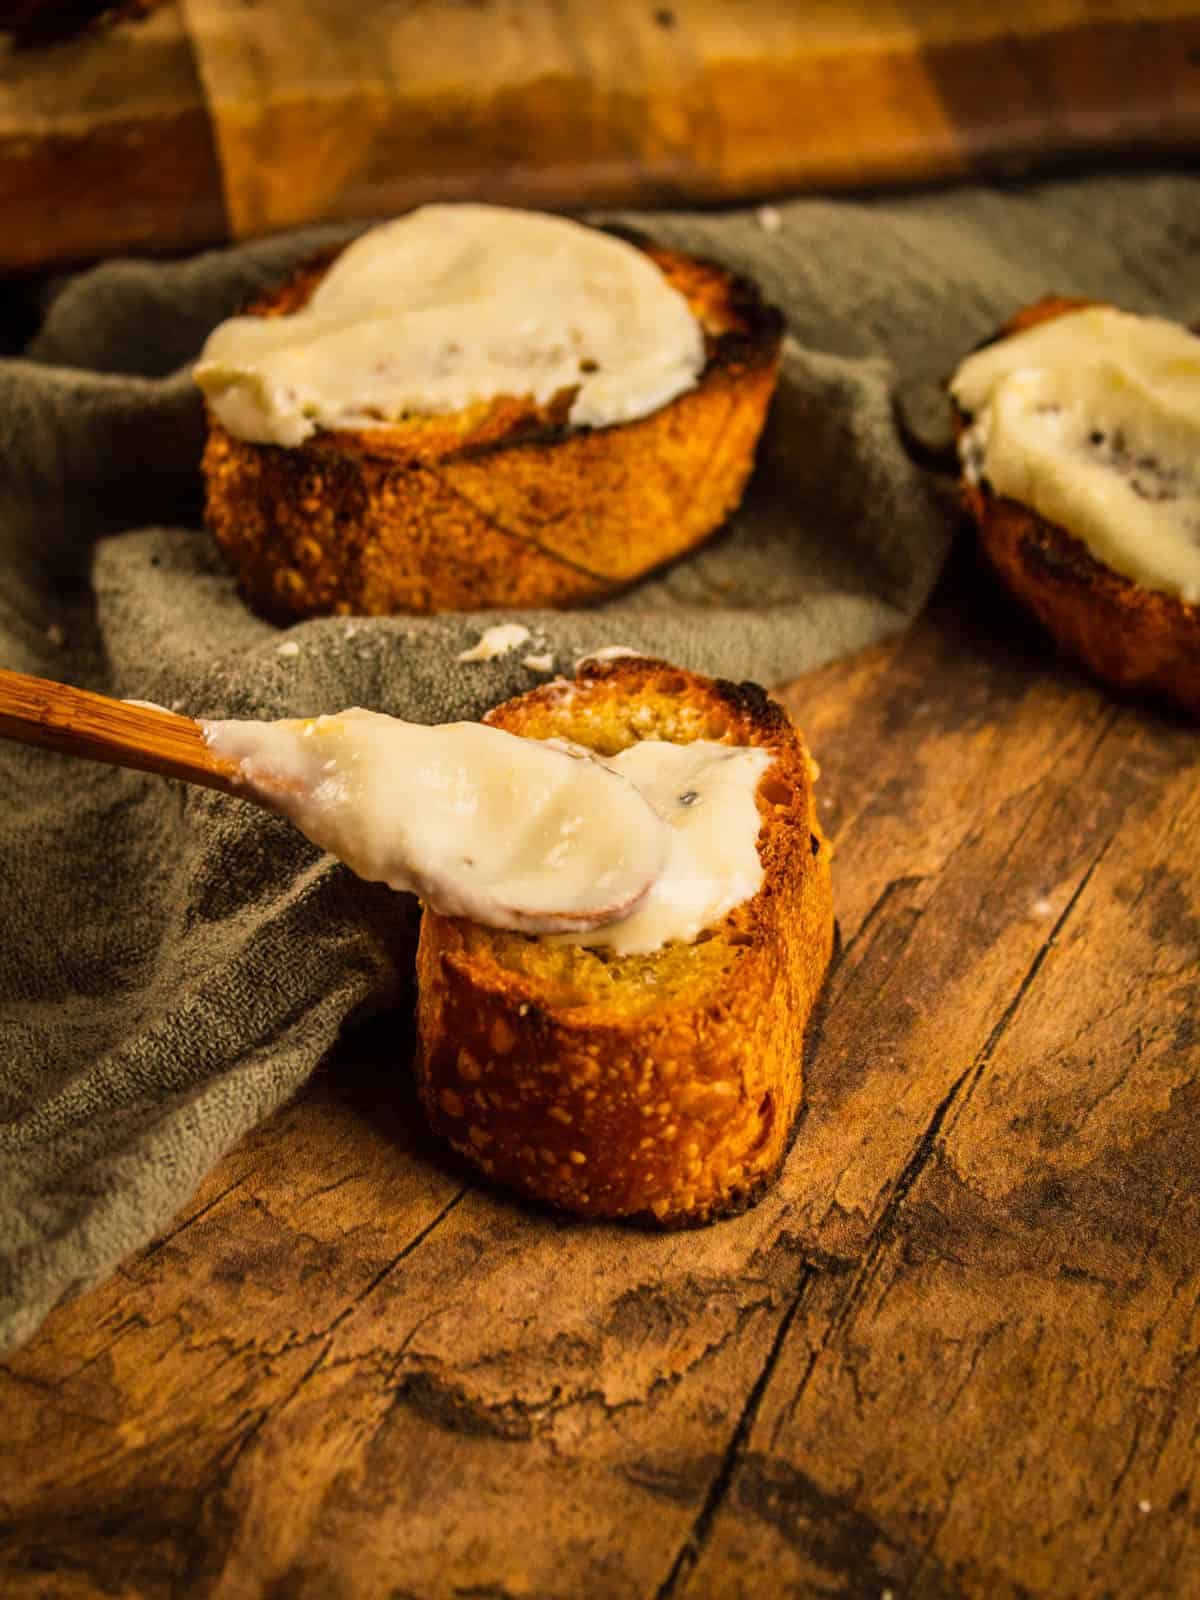 small wooden spoon dropping ricotta spread on baguette slice